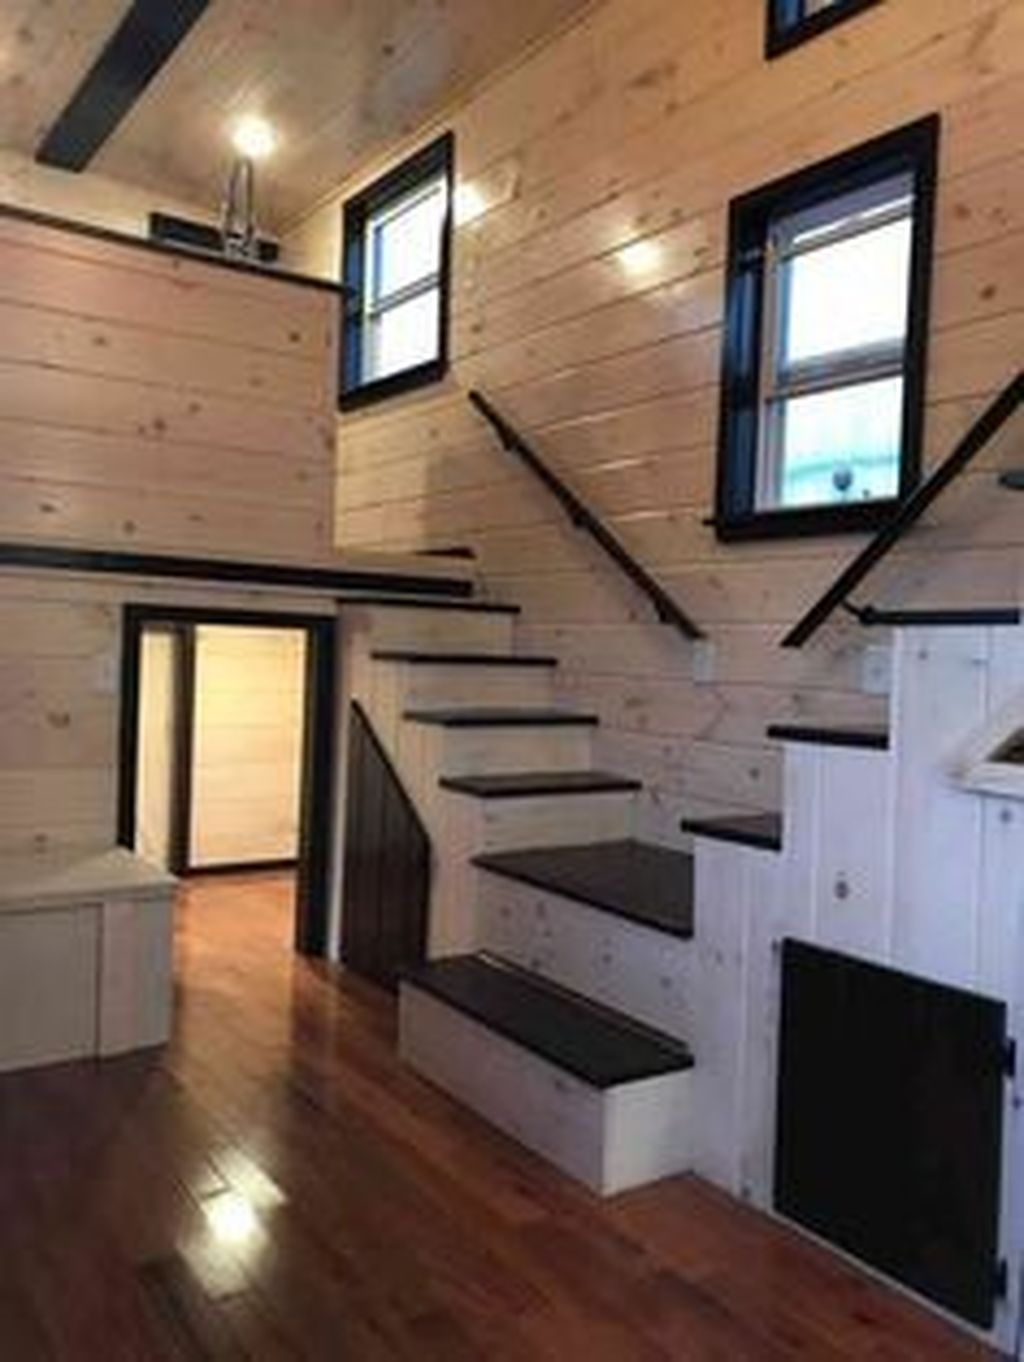 Cute Tiny House Design Ideas On Wheels That You Must Have Now 41